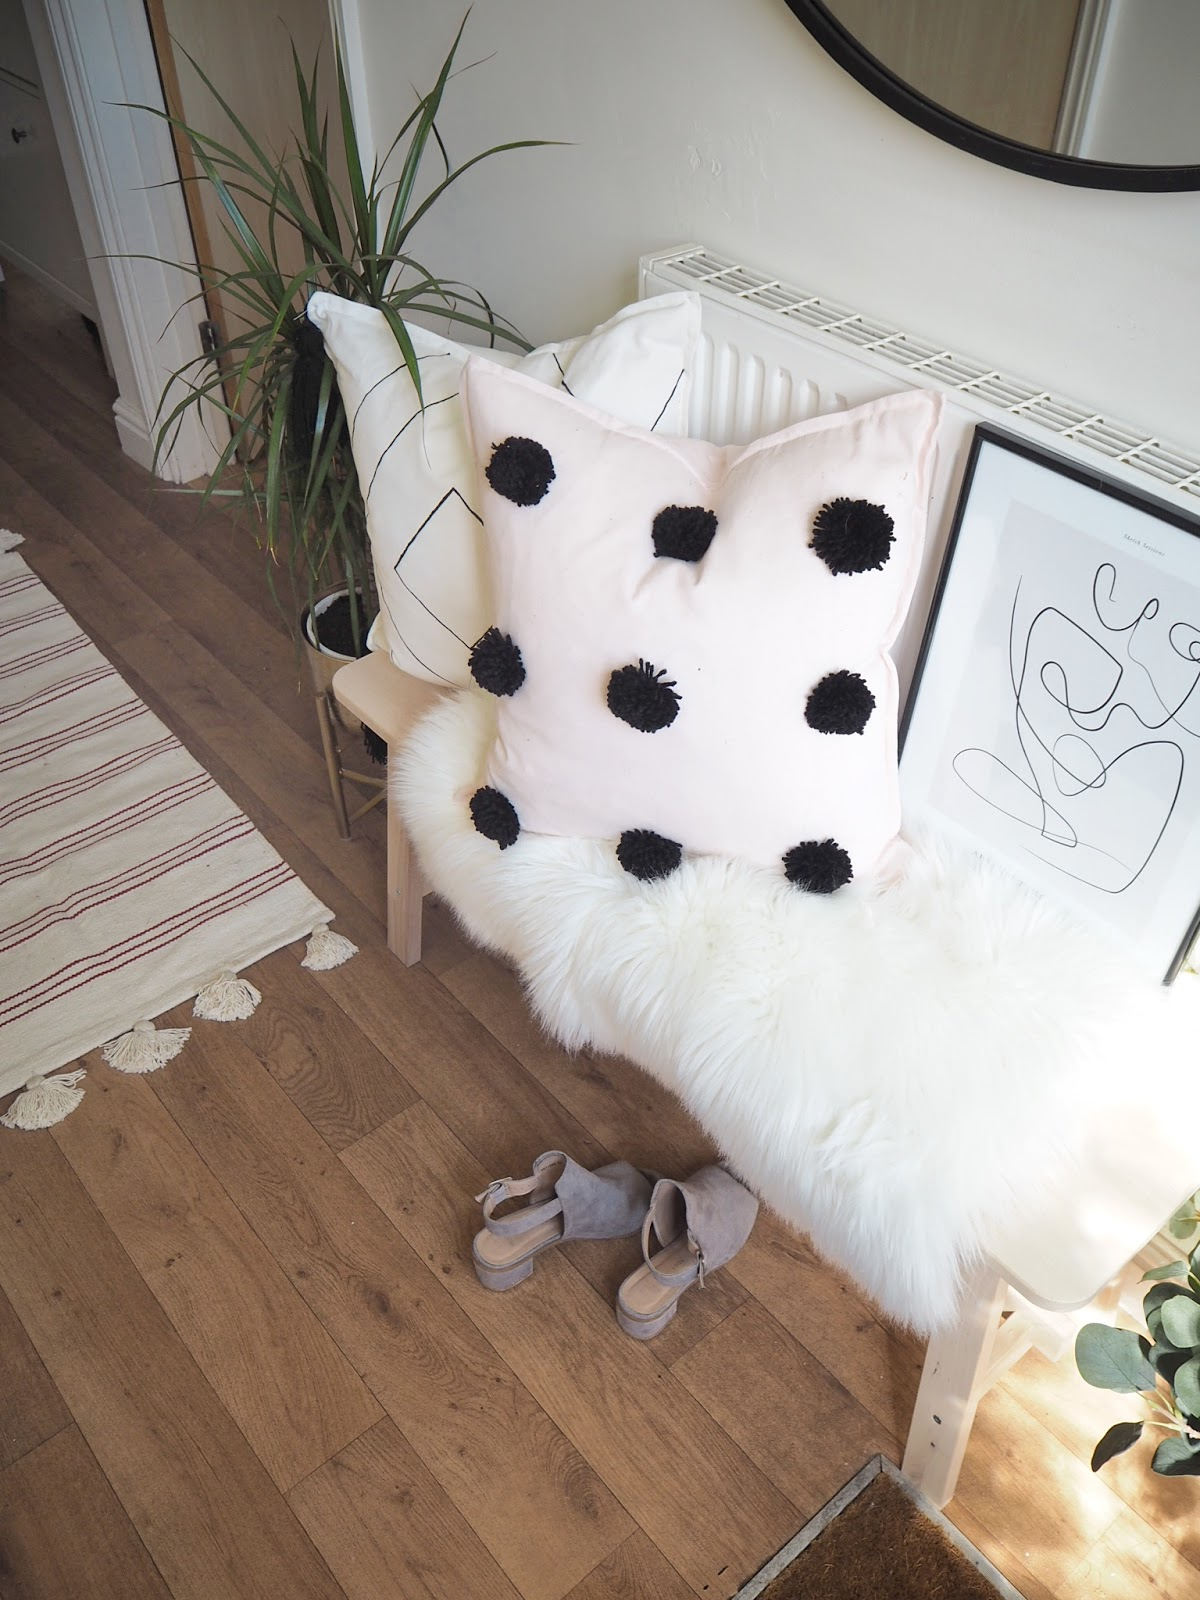 hallway transformation using ikea furniture, upcycled chairs, diy gallery wall and painting a stair banister to create a scandi-boho style hallway which will make a good impression to visitors. How to style home decor accessories and use interior design to transform a space on a budget.